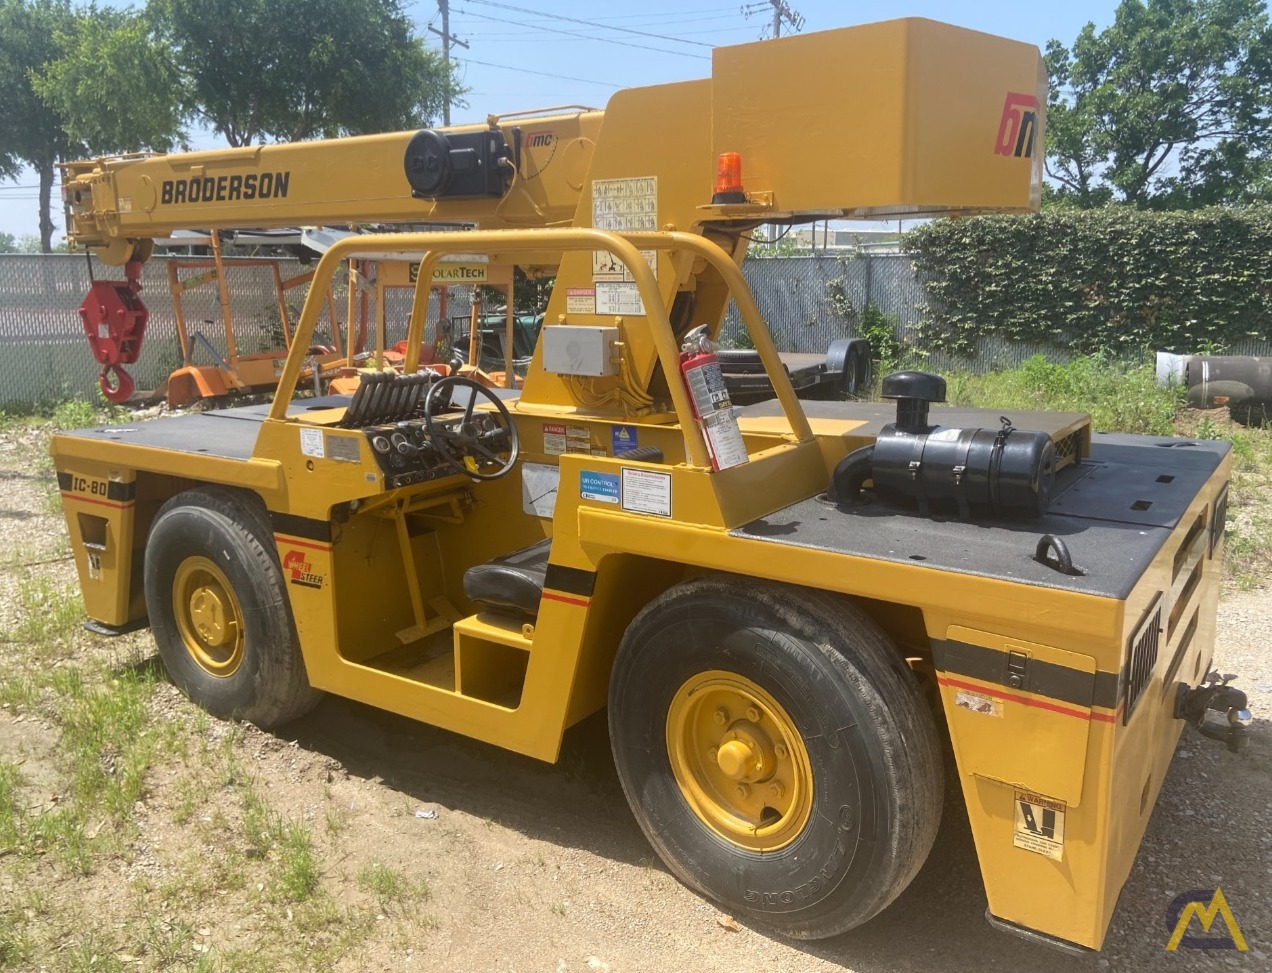 Broderson IC-80-3G 9-Ton Carry Deck Industrial Crane 2